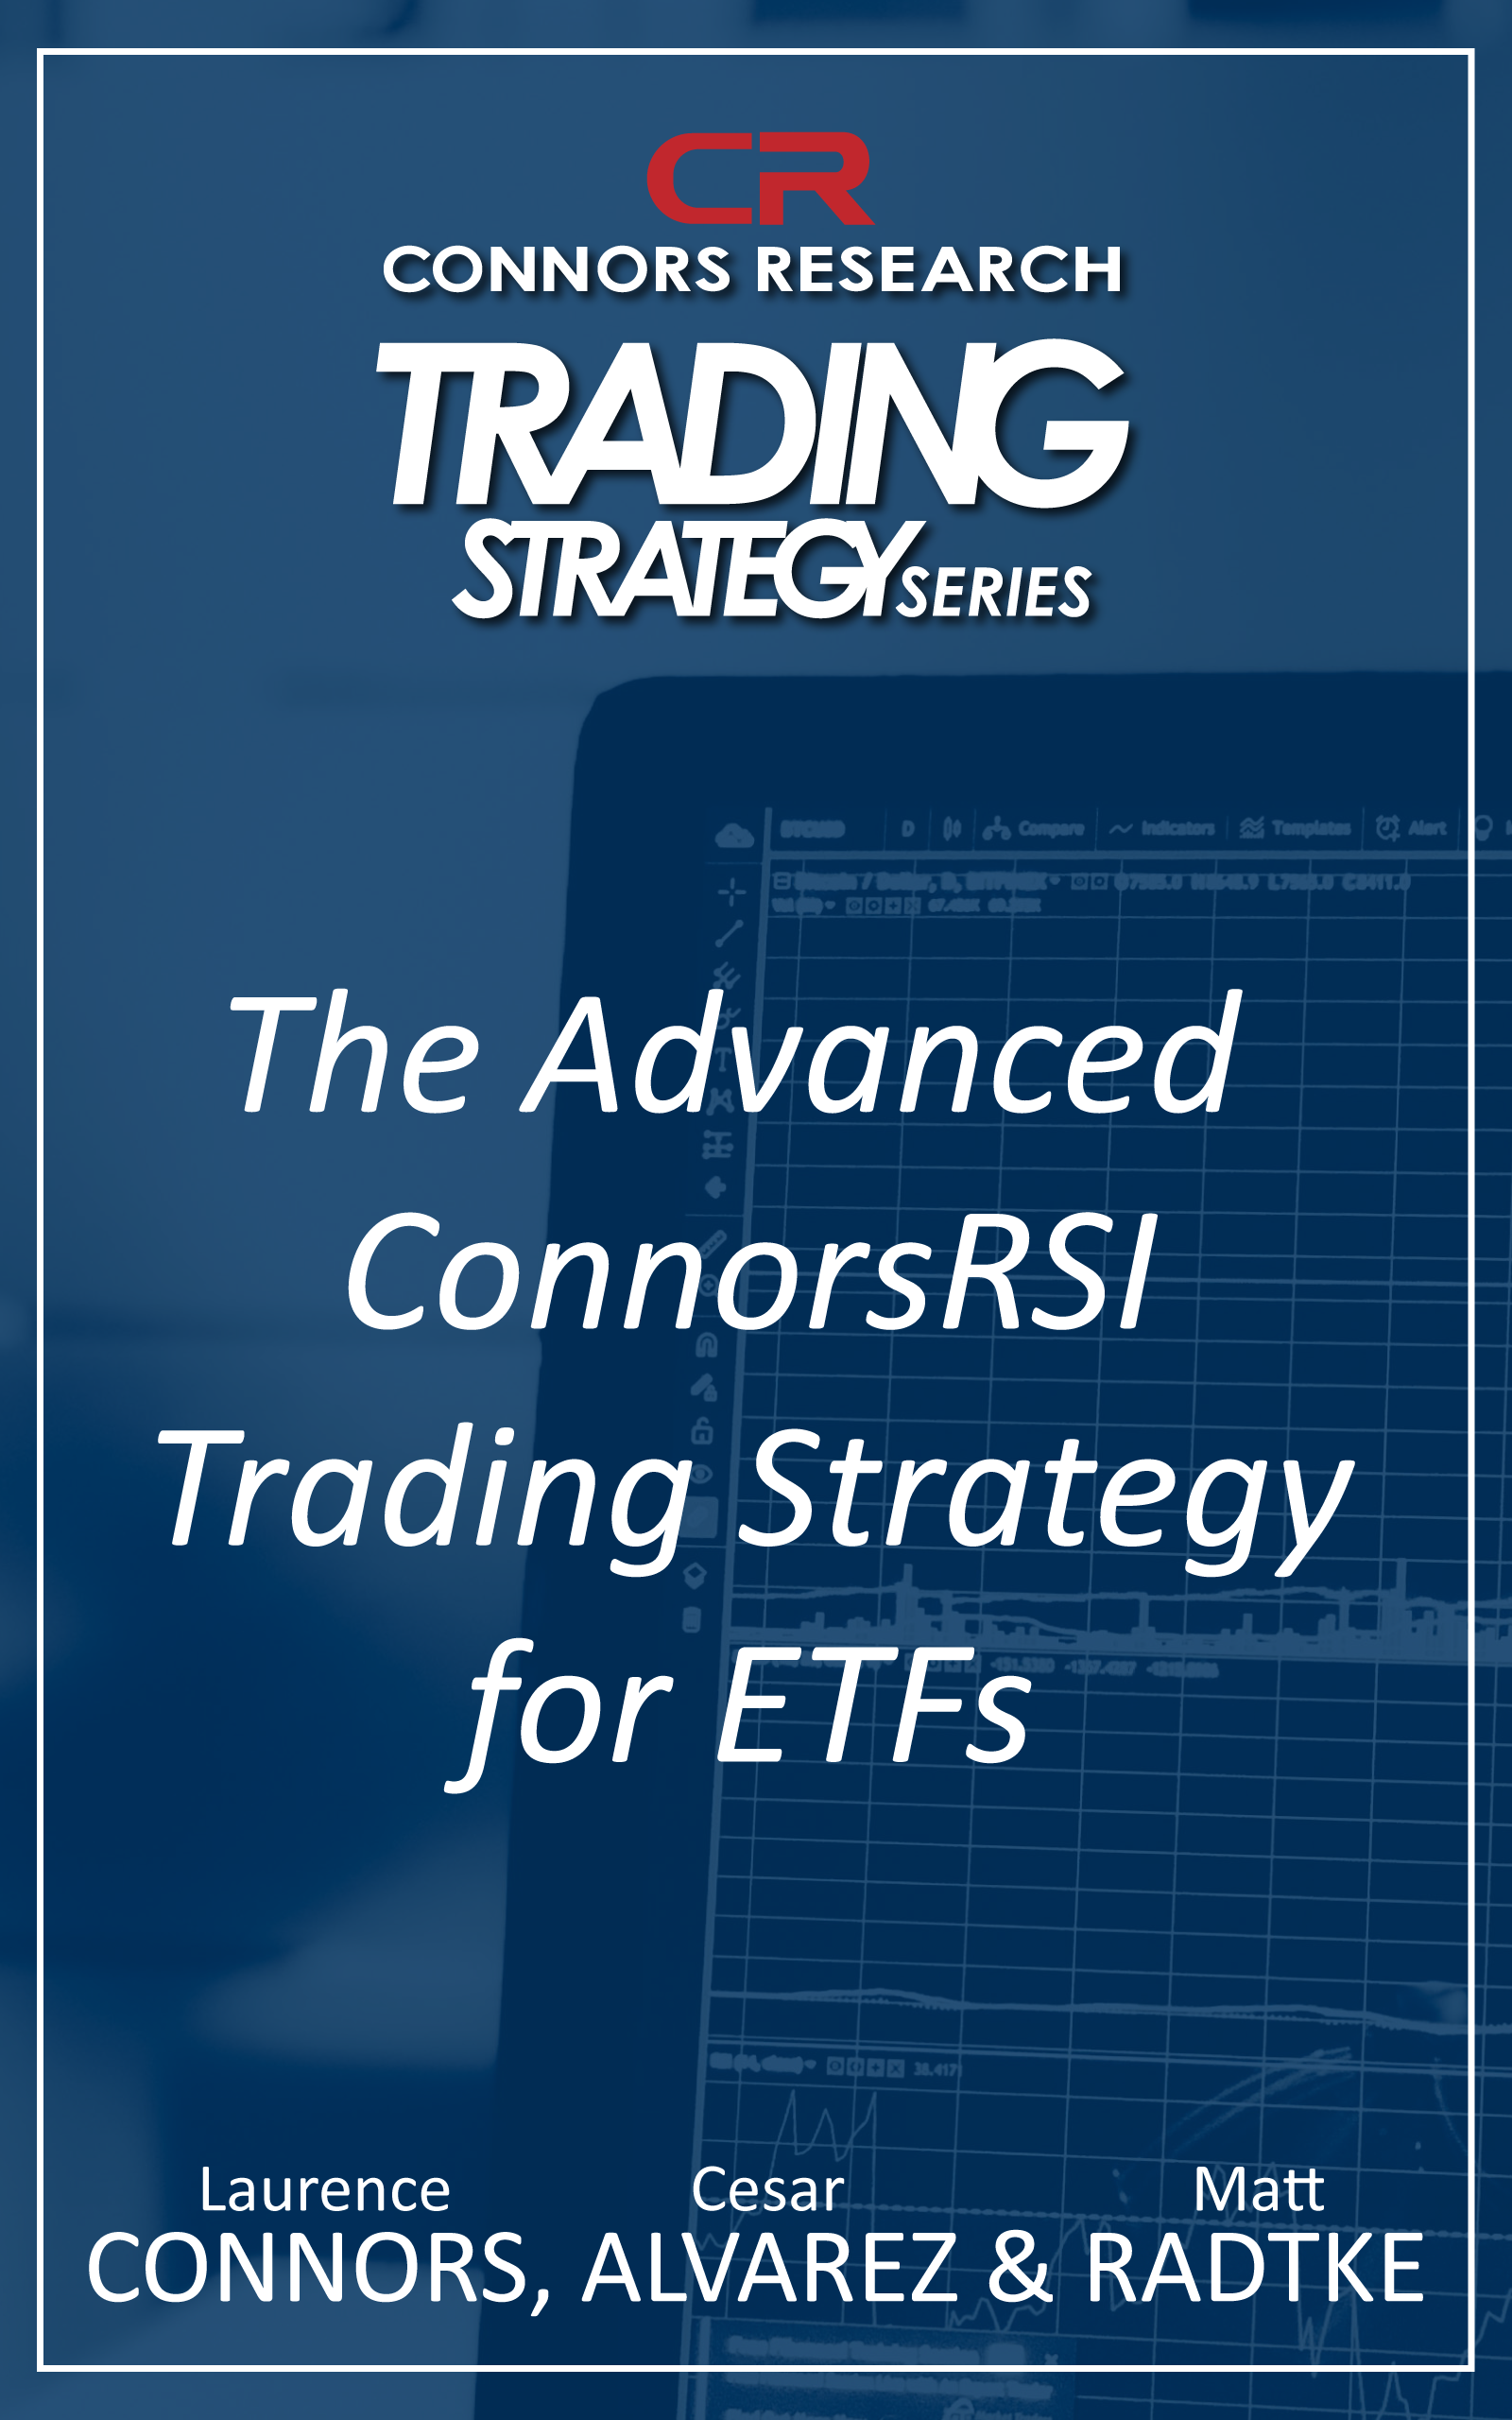 Connors Research Trading Strategy Series: Advanced ConnorsRSI Strategy for ETFs BOO-CREC-D